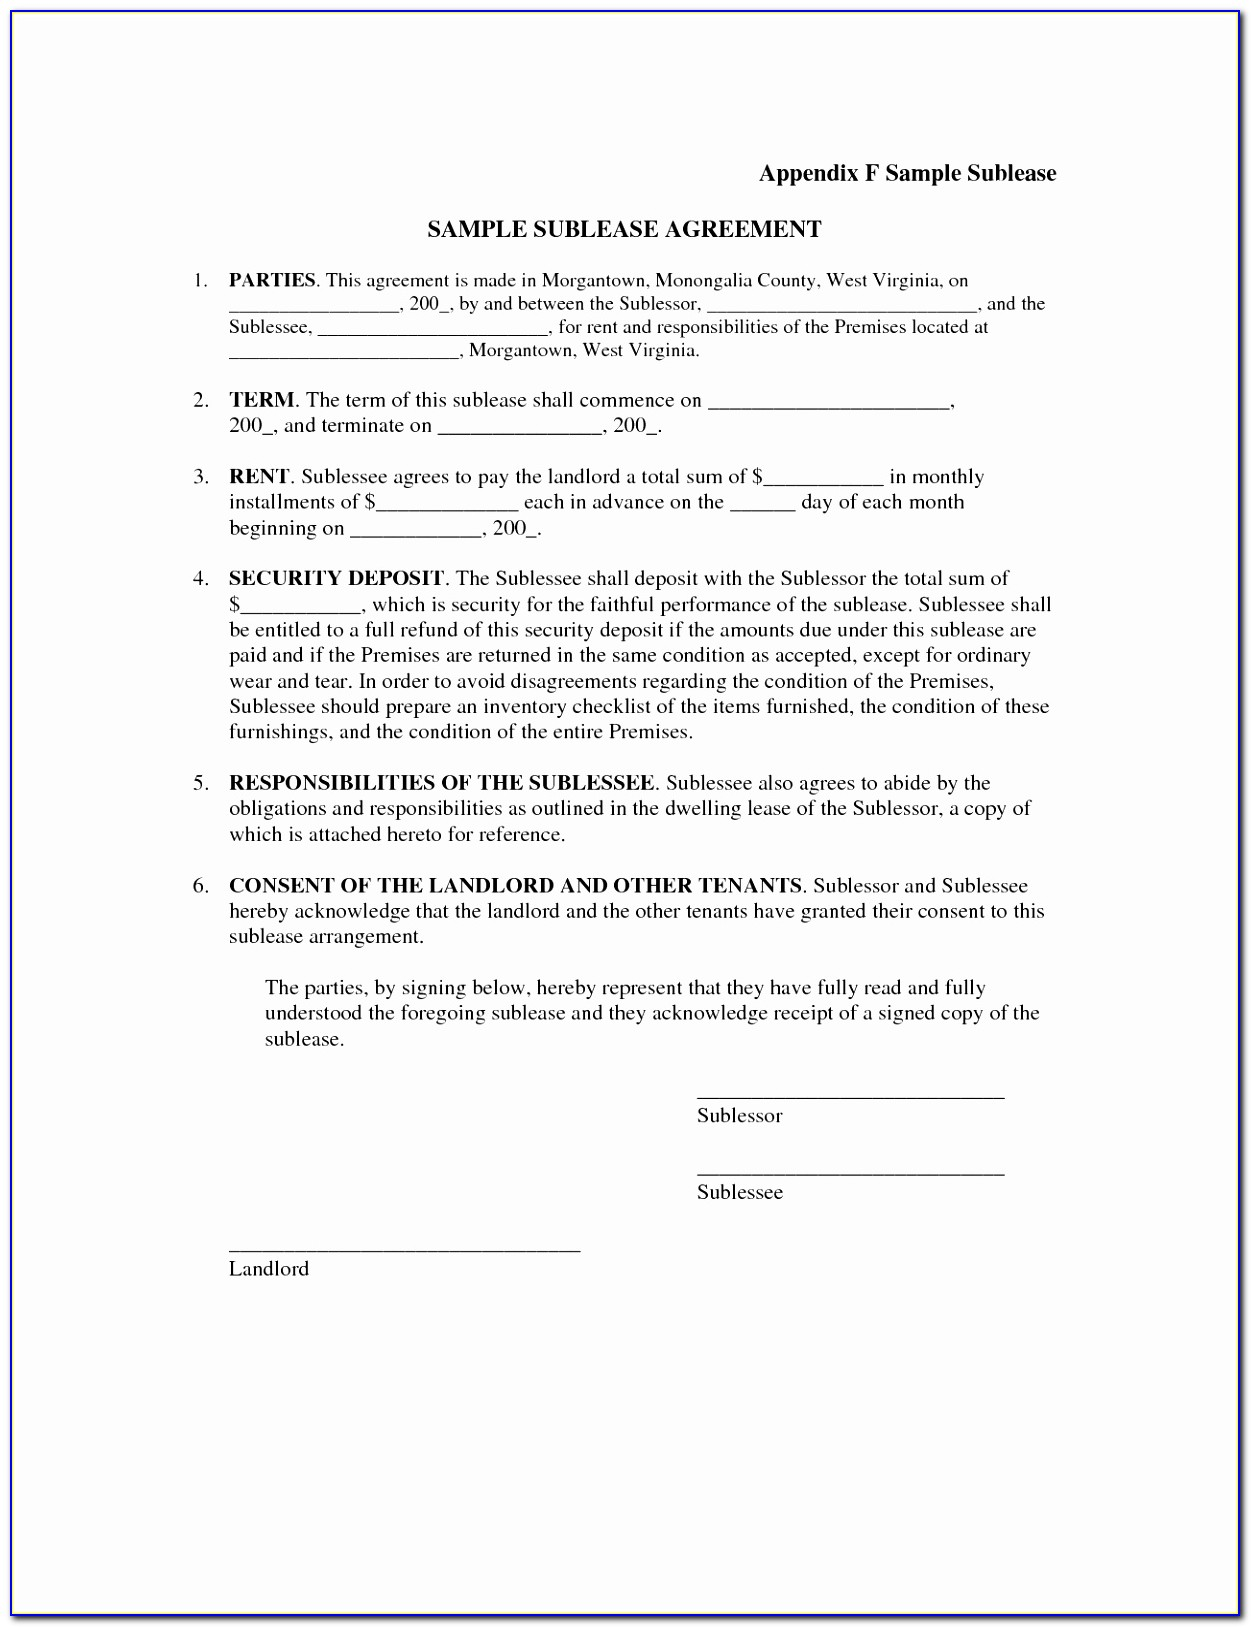 Appendix F Sample Sublease Sample Sublease Agreement Parties This Example Tenants In Common Agreement Template Lovely Pdf Word Excel Template Atrau